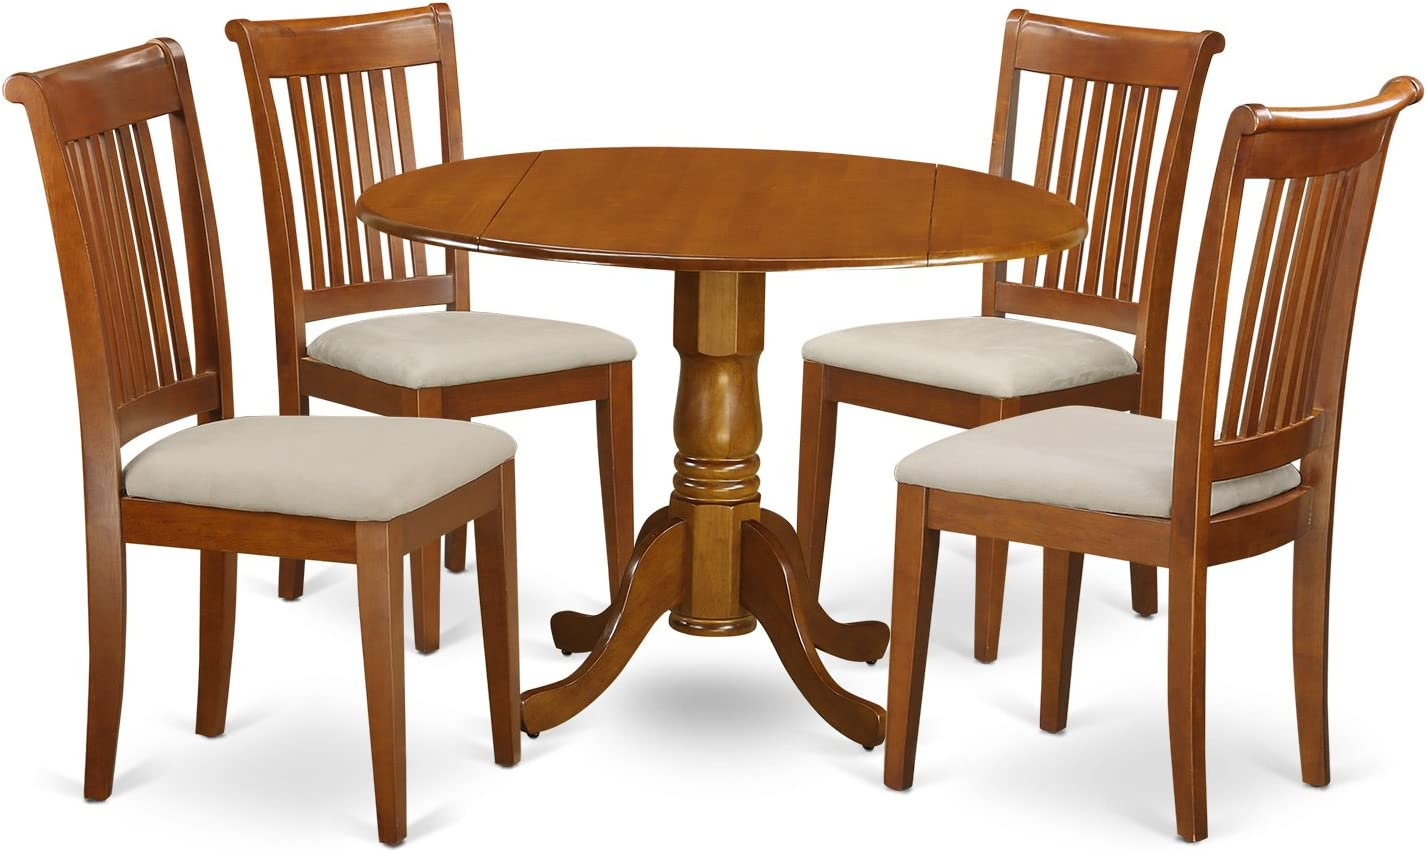 DLPO5-SBR-C 5 PC Kitchen Table set-small Kitchen Table-plus 4 dinette Chairs